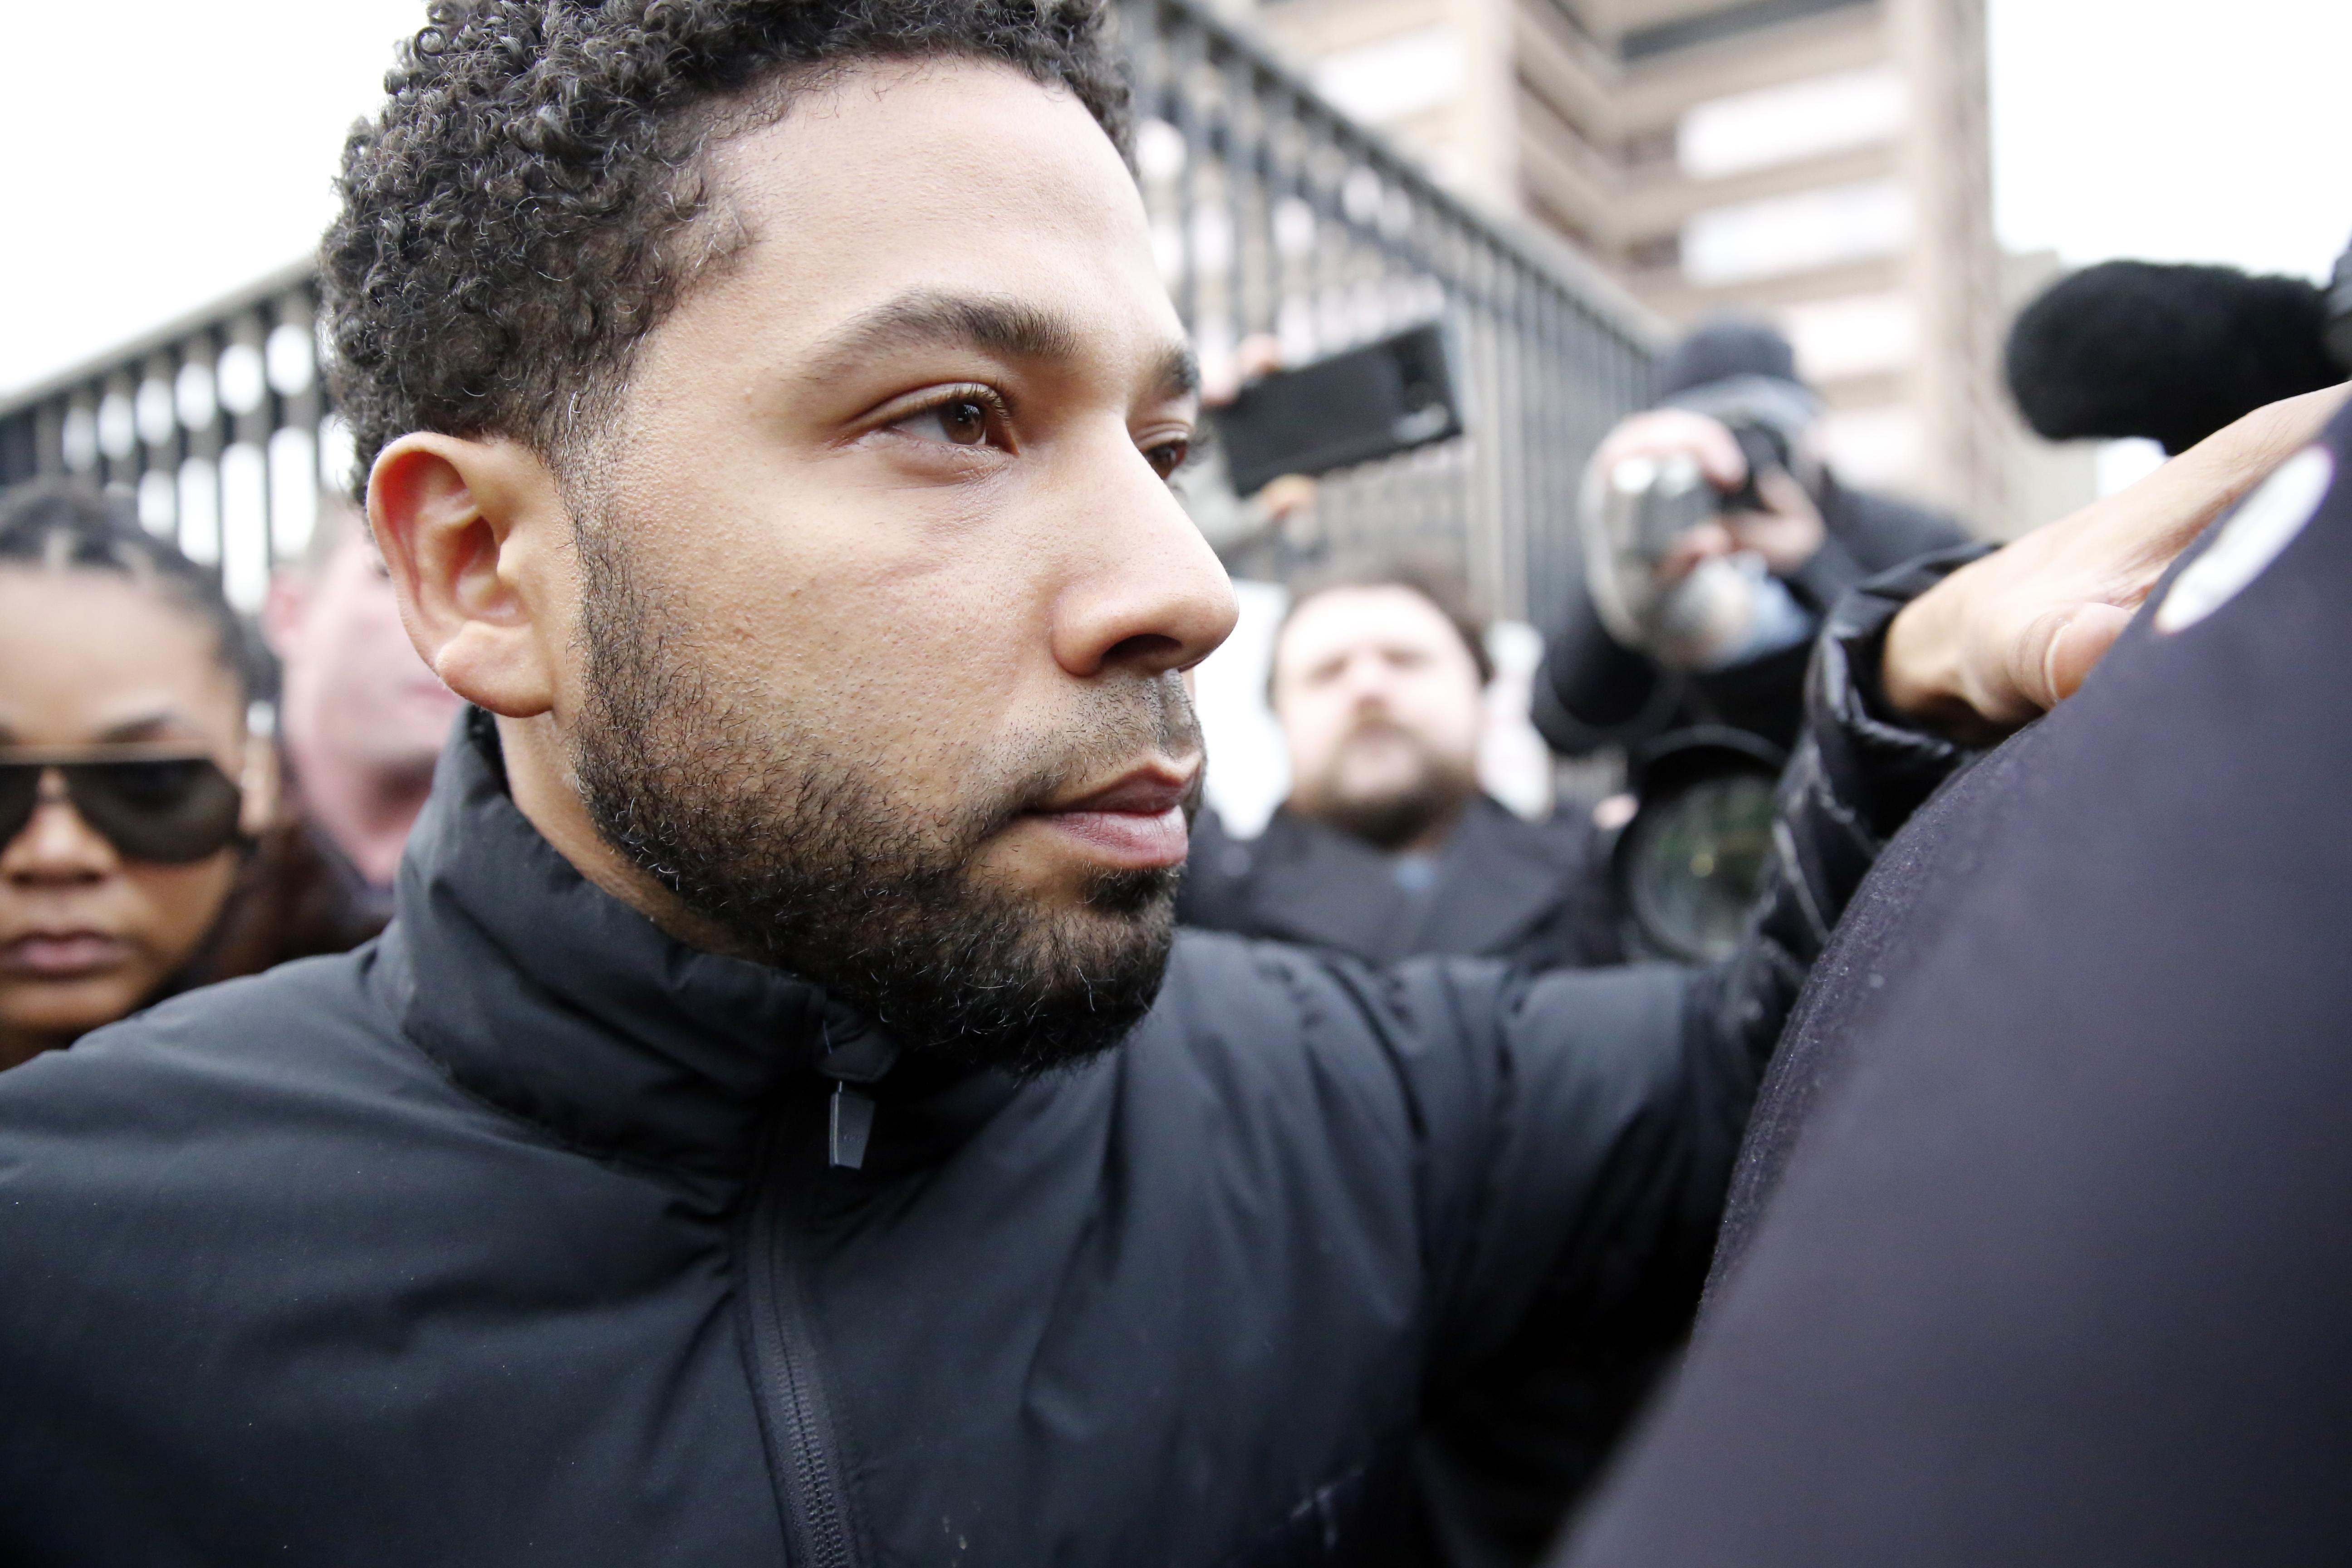 Actor Jussie Smollett indicted on 16 counts by grand jury